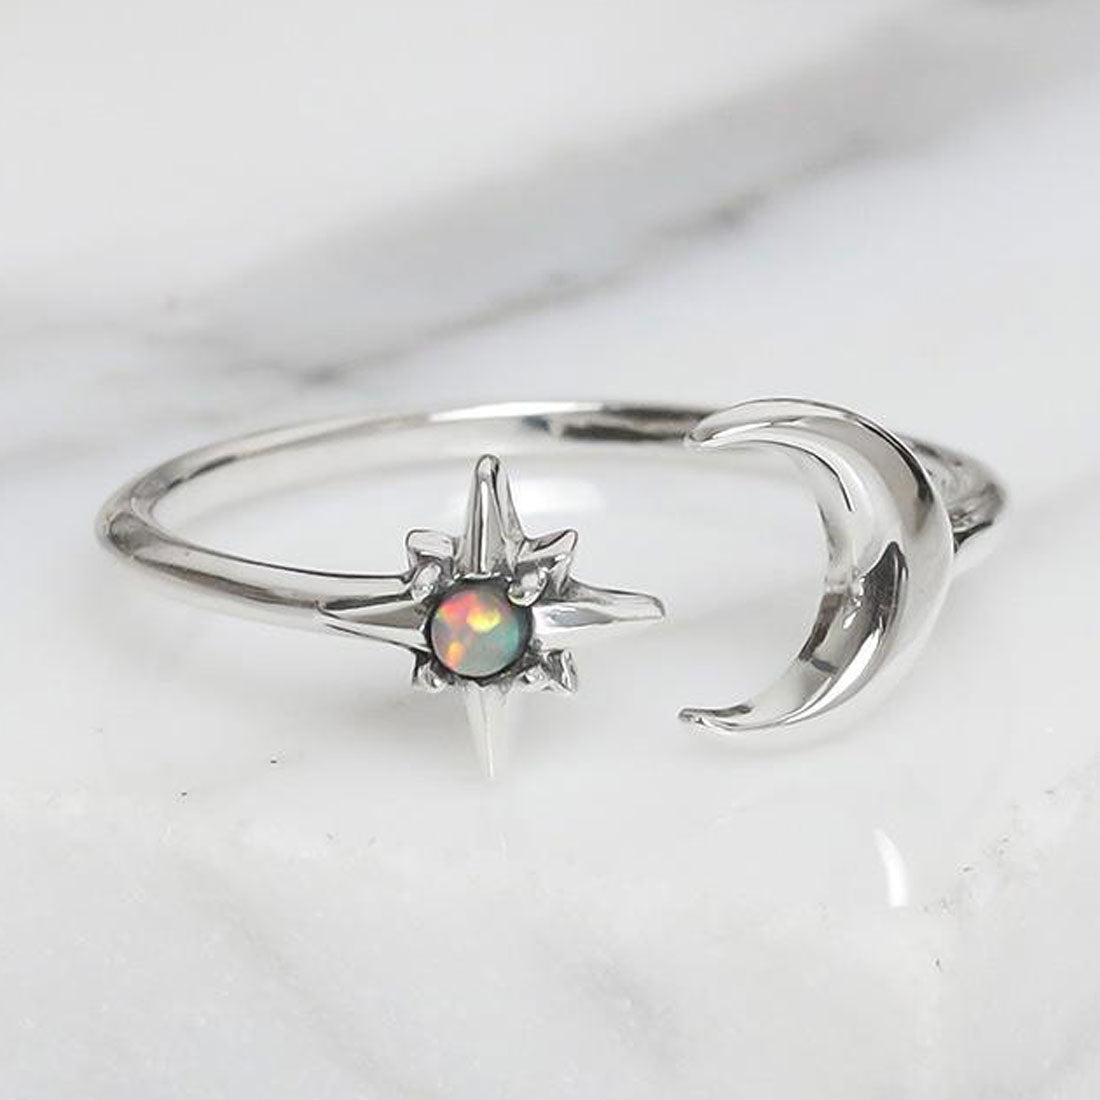 Nebula Dreams Opal Ring